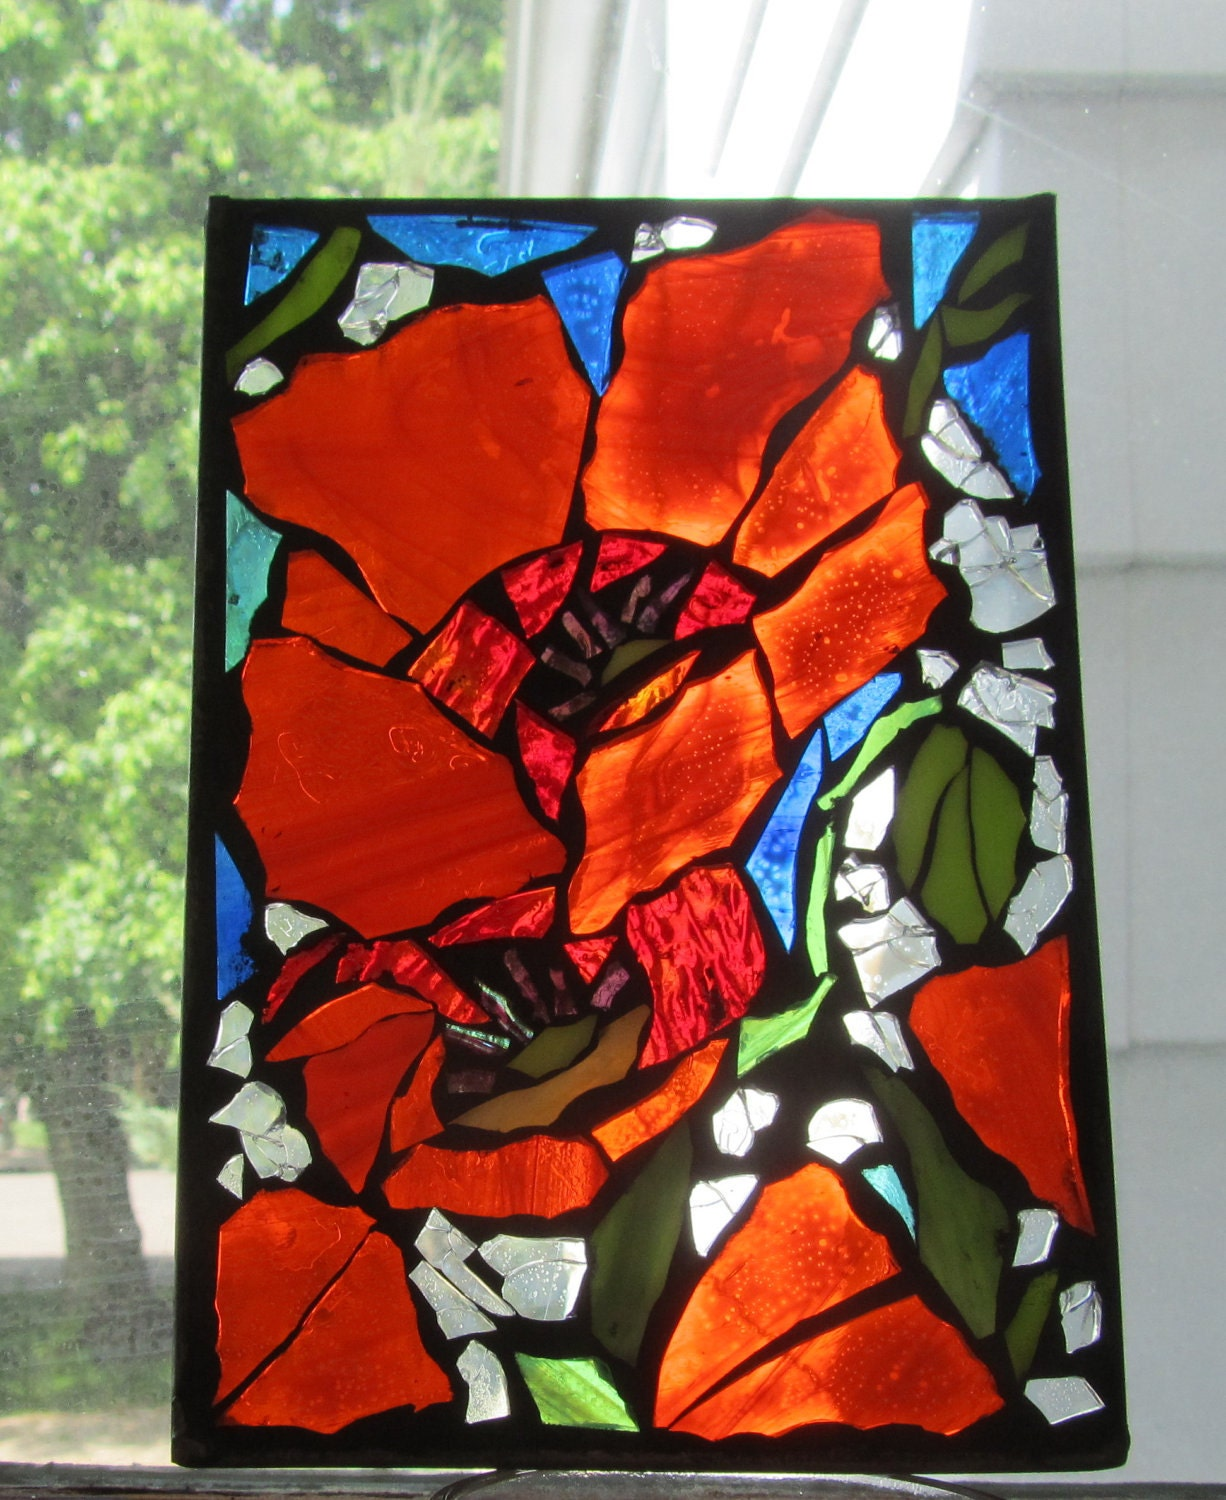 Stained Glass Mosaic Bright Red Poppies Wall Art Panel